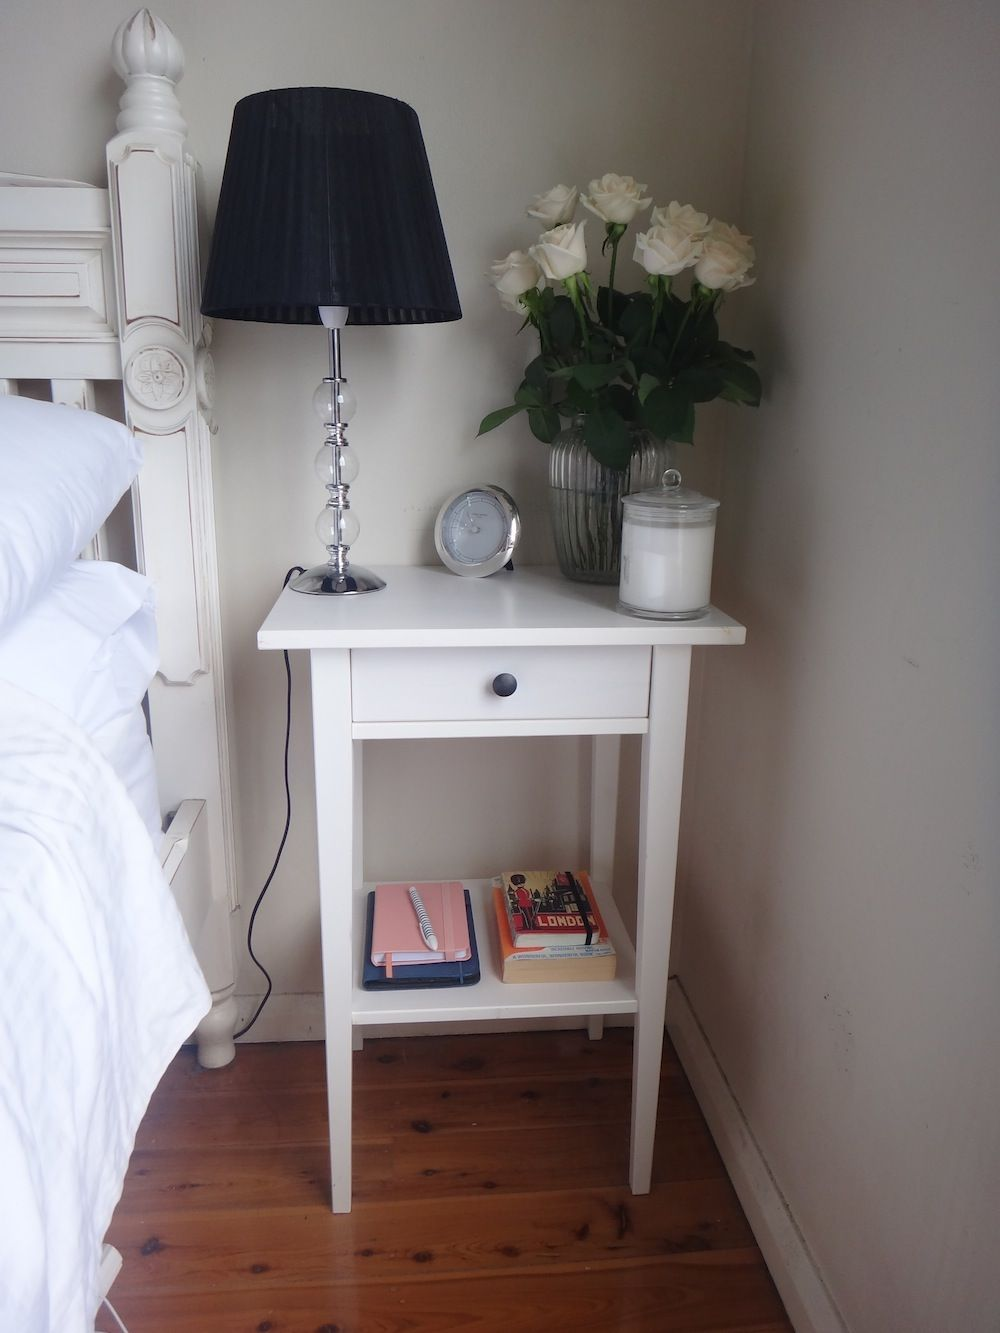 Ikea hemnes white bedside table - getting 6 of these and will put